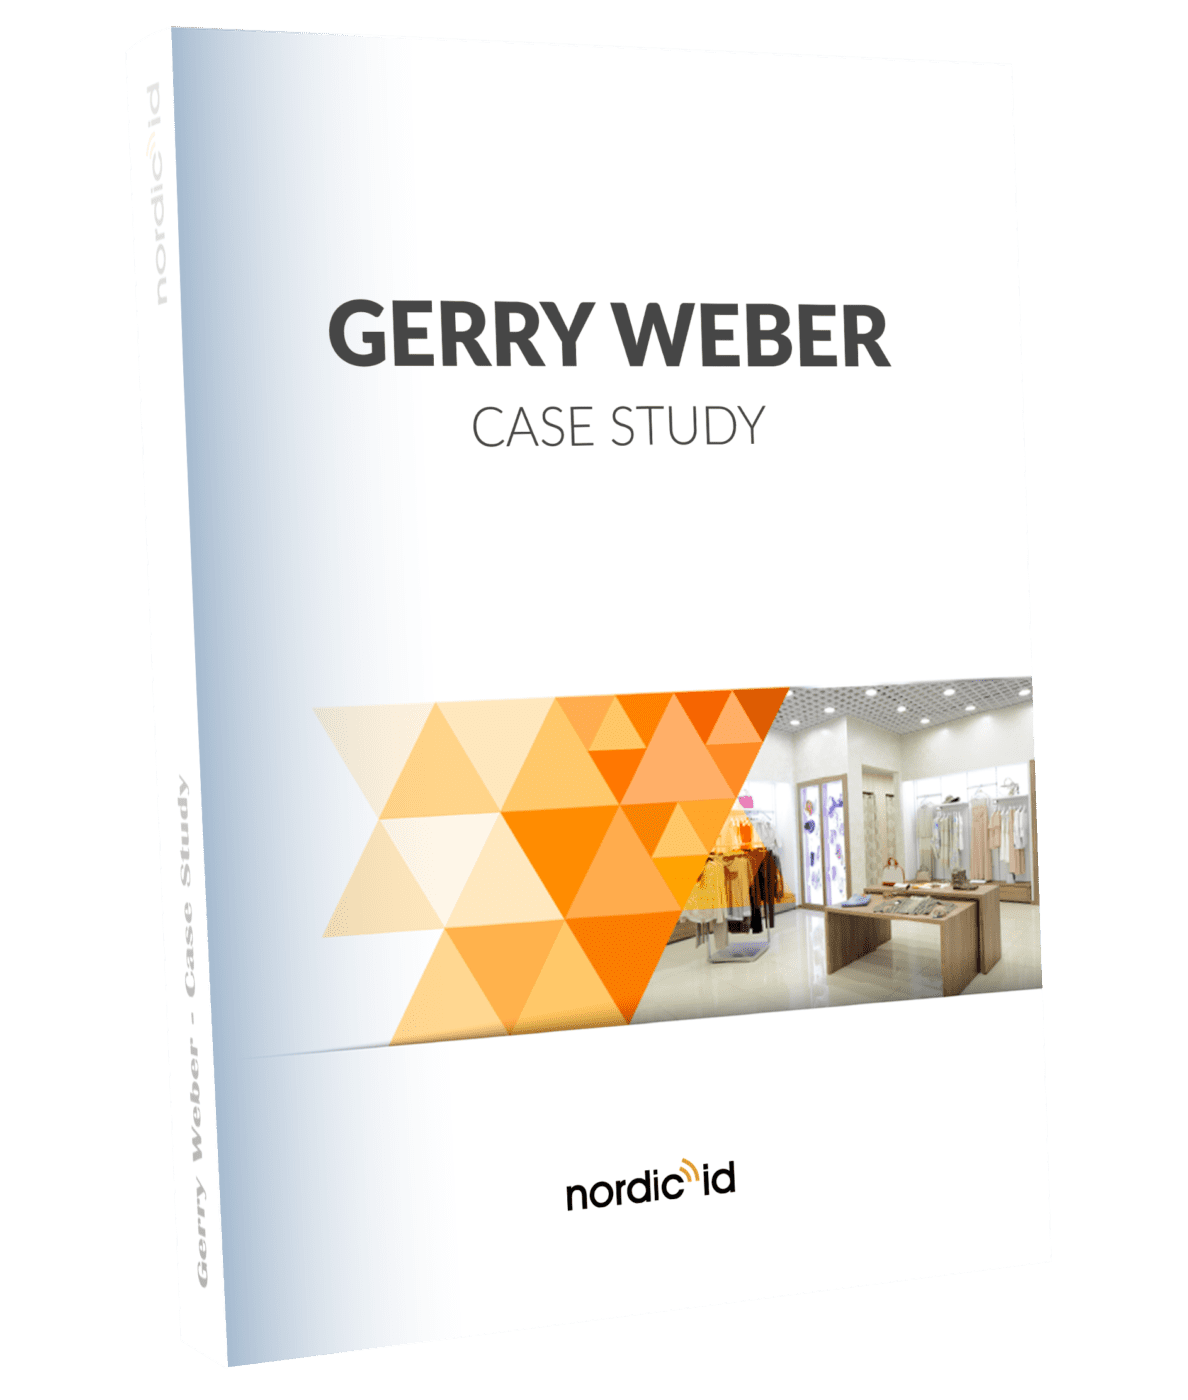 Gerry Weber Case Study